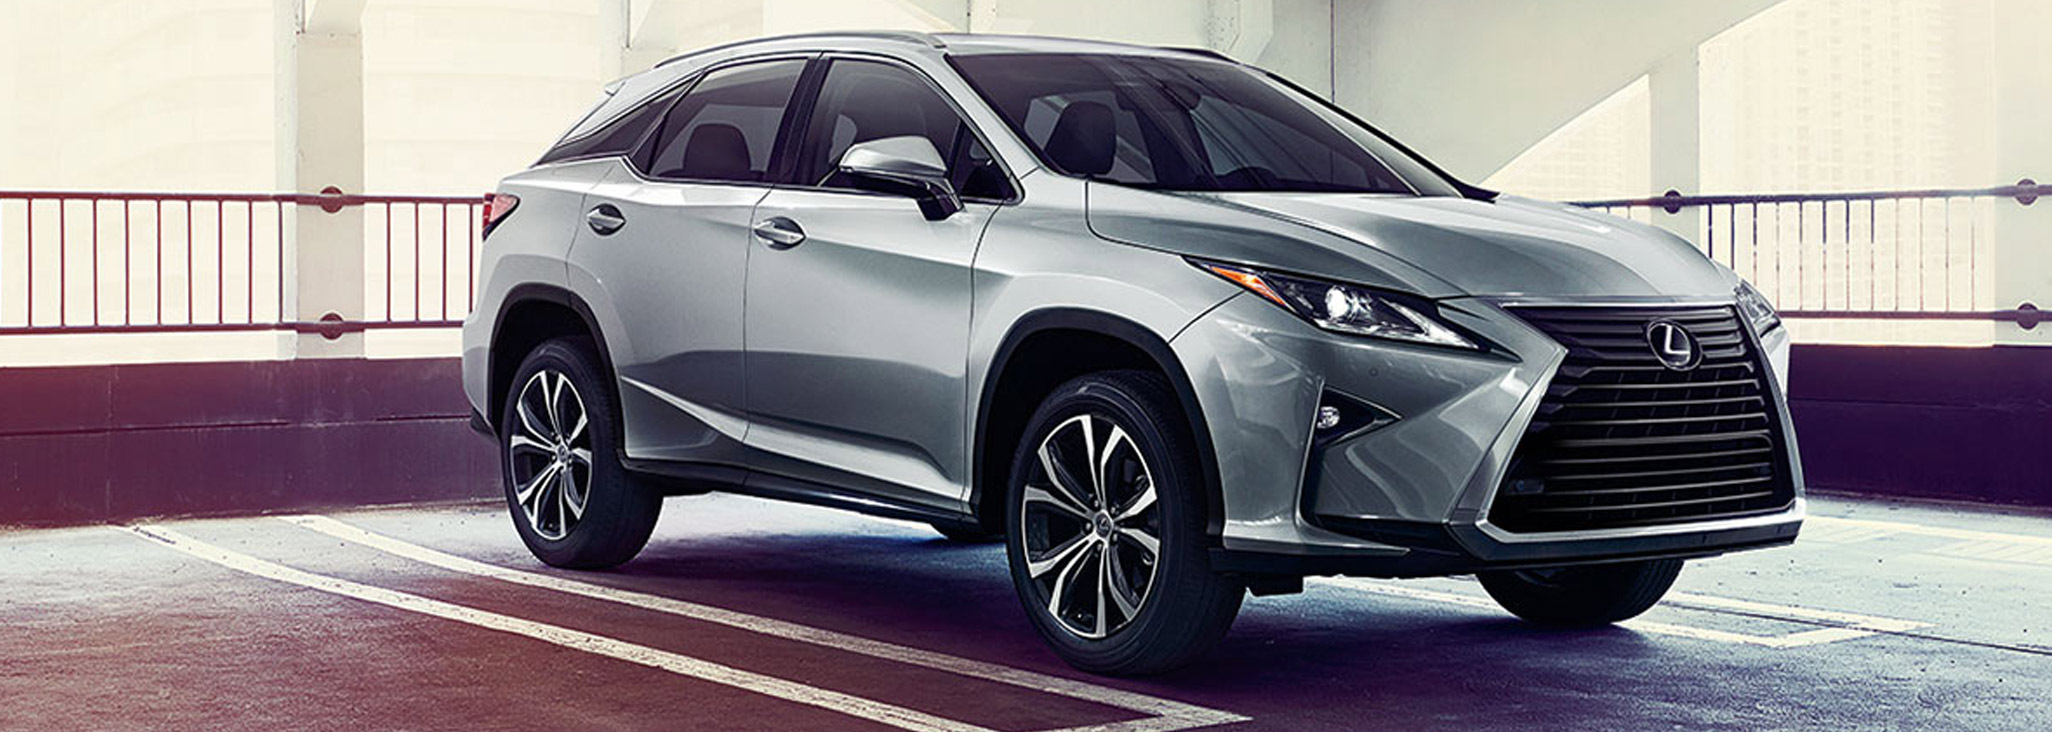 at jersey here serving with buy and vehicle show cherry deals finance lexus coupons these used models or easter of hill carnival a best pywan new nj lease